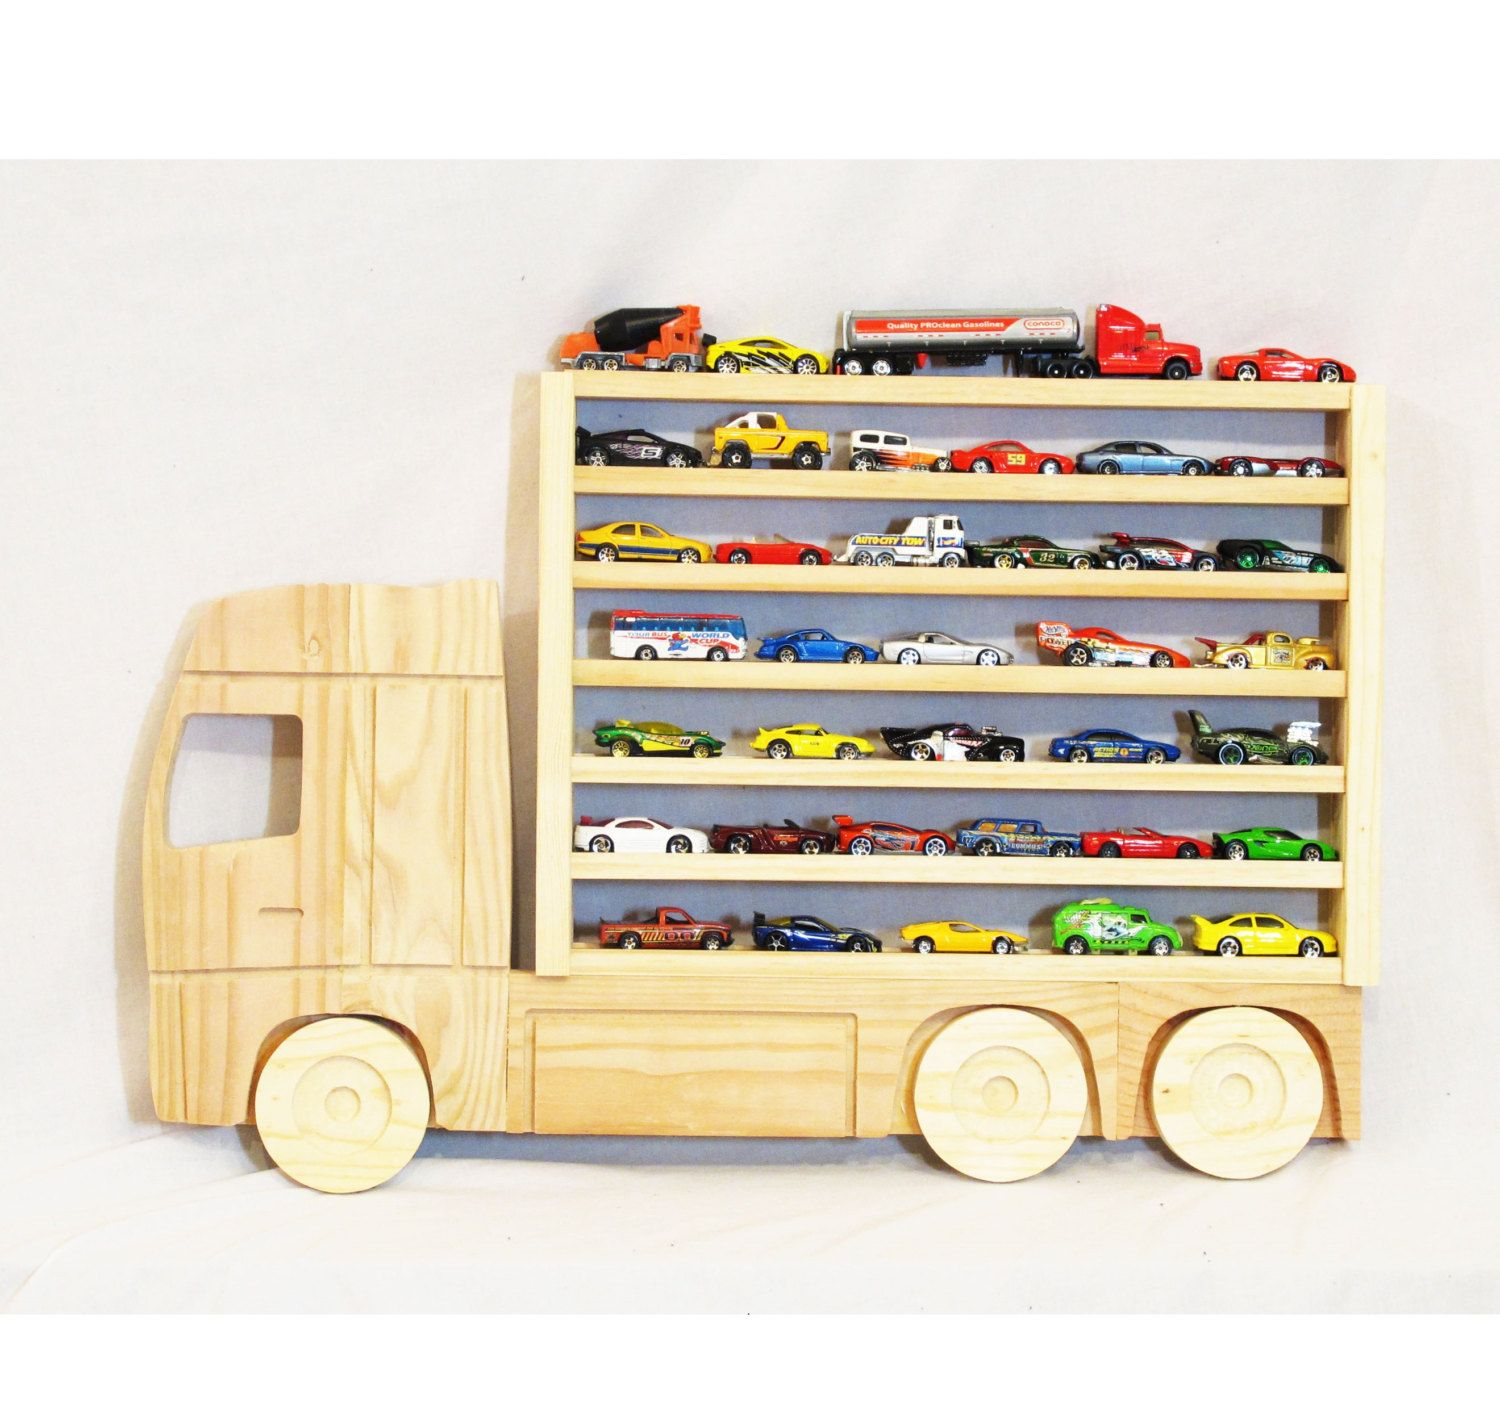 Wooden Truck Hanging Storage Display Shelf for Hot Wheels and ...